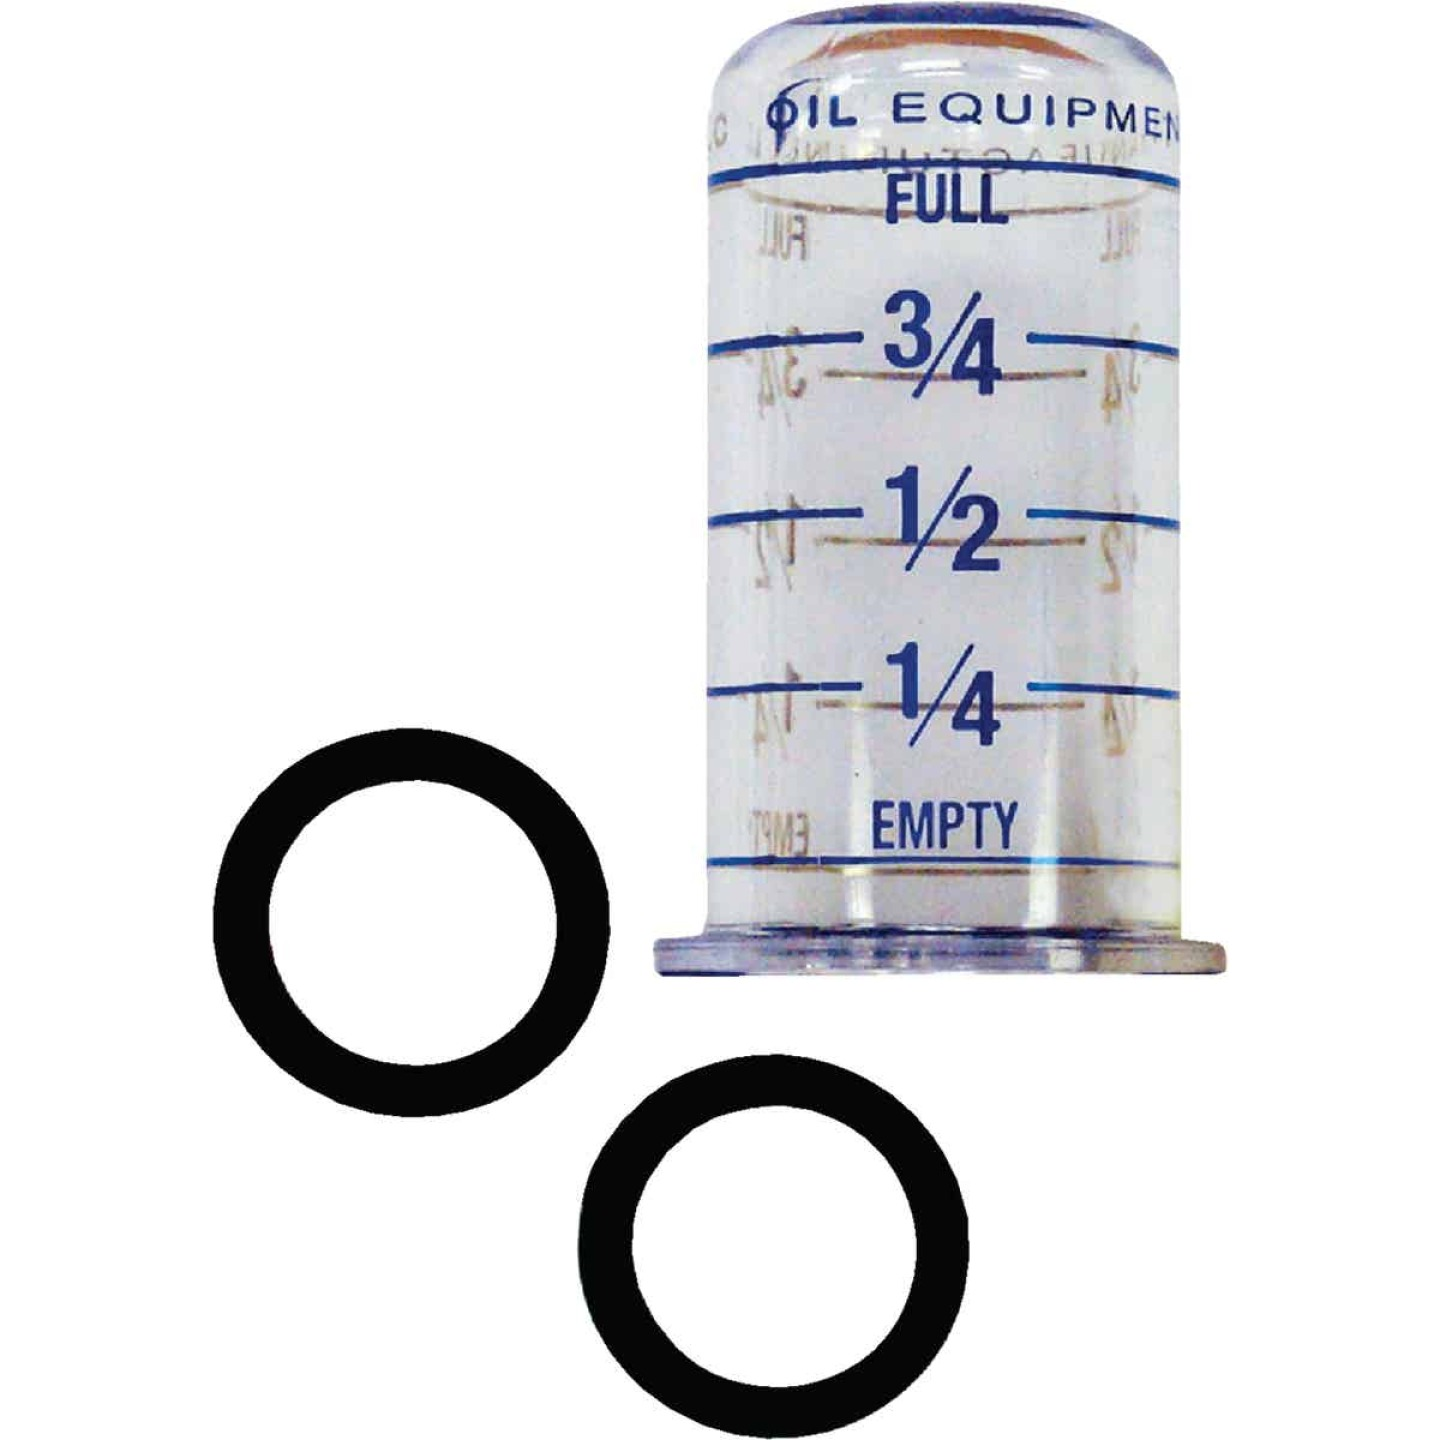 King Oil Tank Gauge Vial Image 1